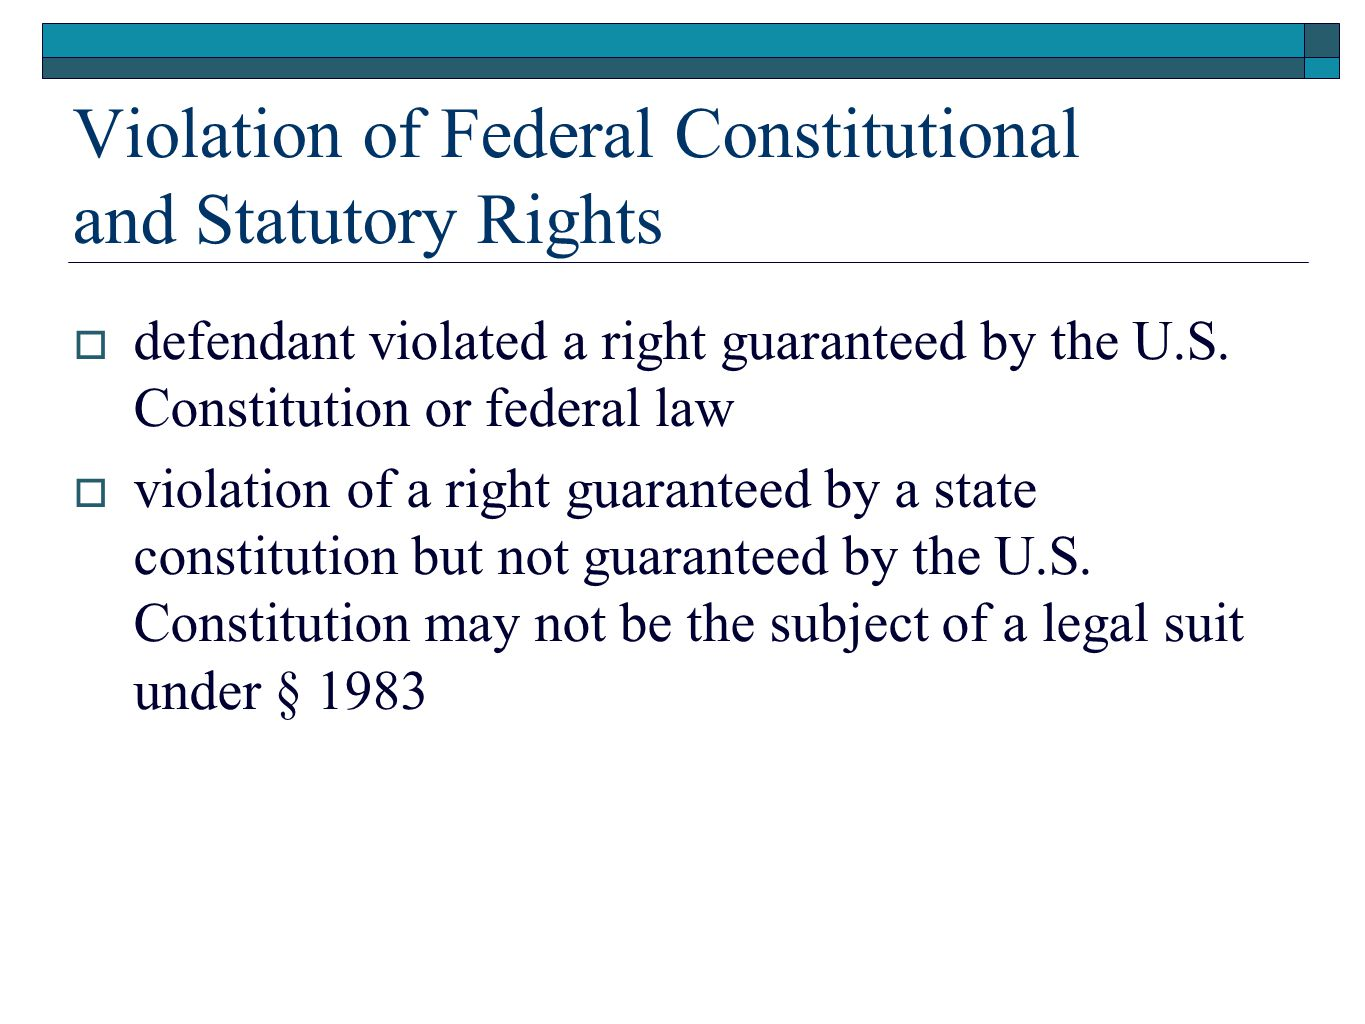 Violation of Federal Constitutional and Statutory Rights